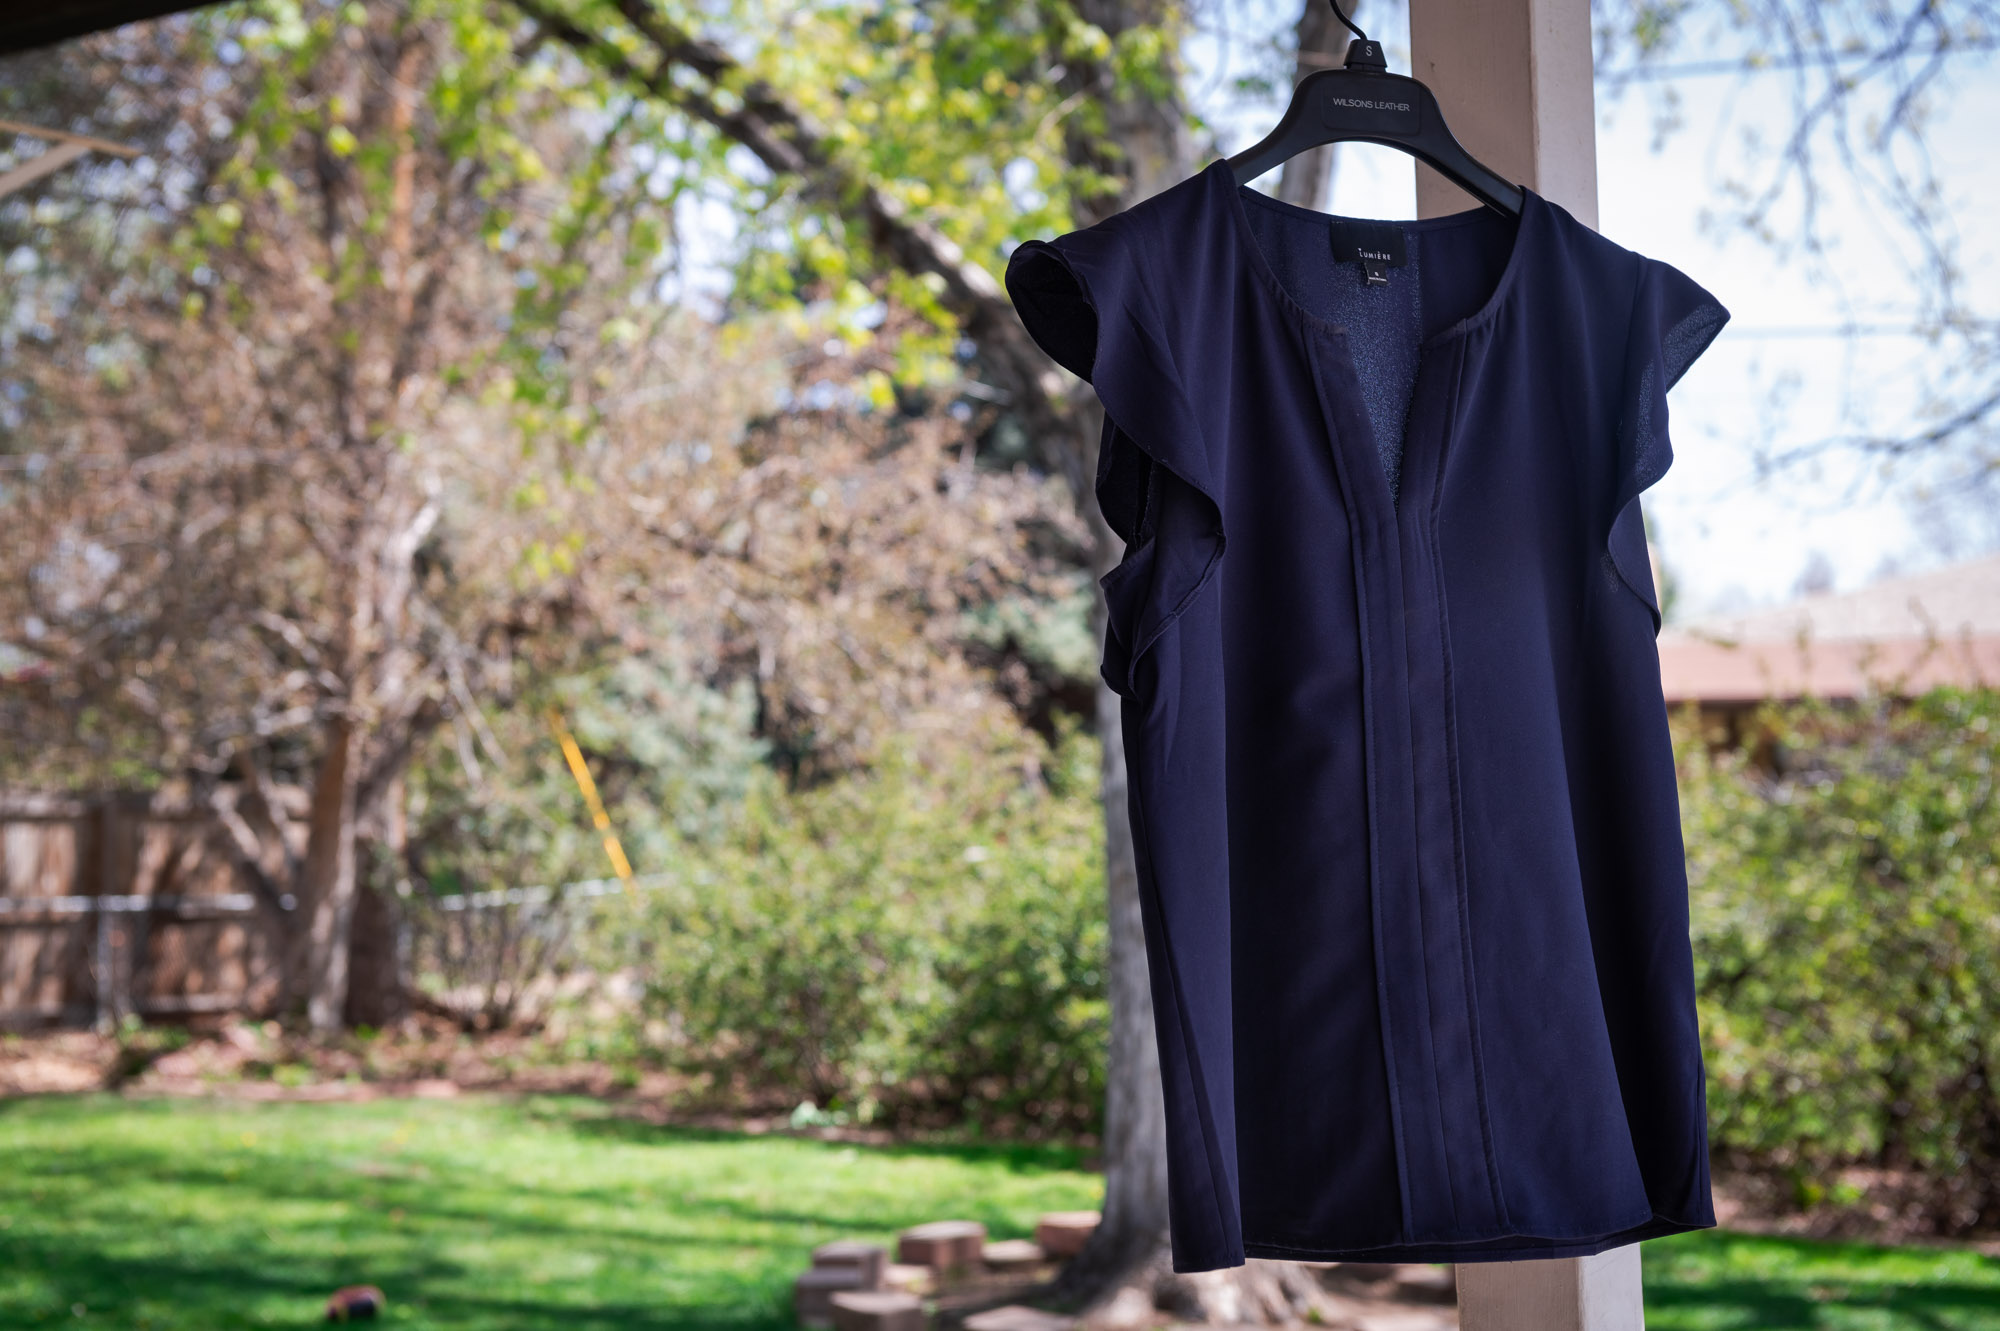 Blue flowy blouse blowing in the breeze while hung outside